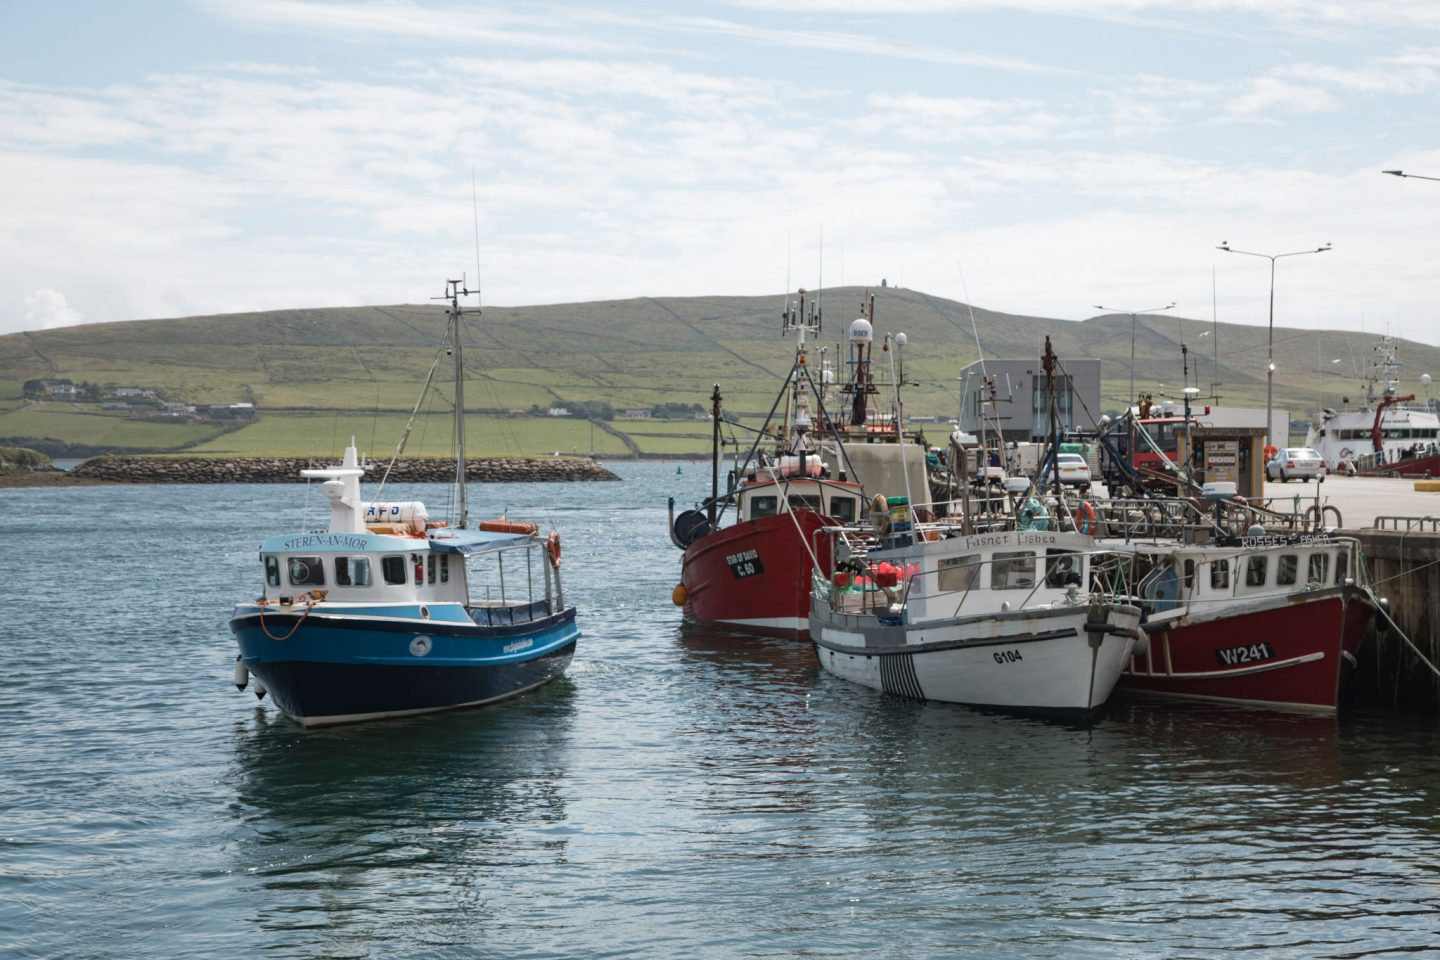 Boats in Dingle